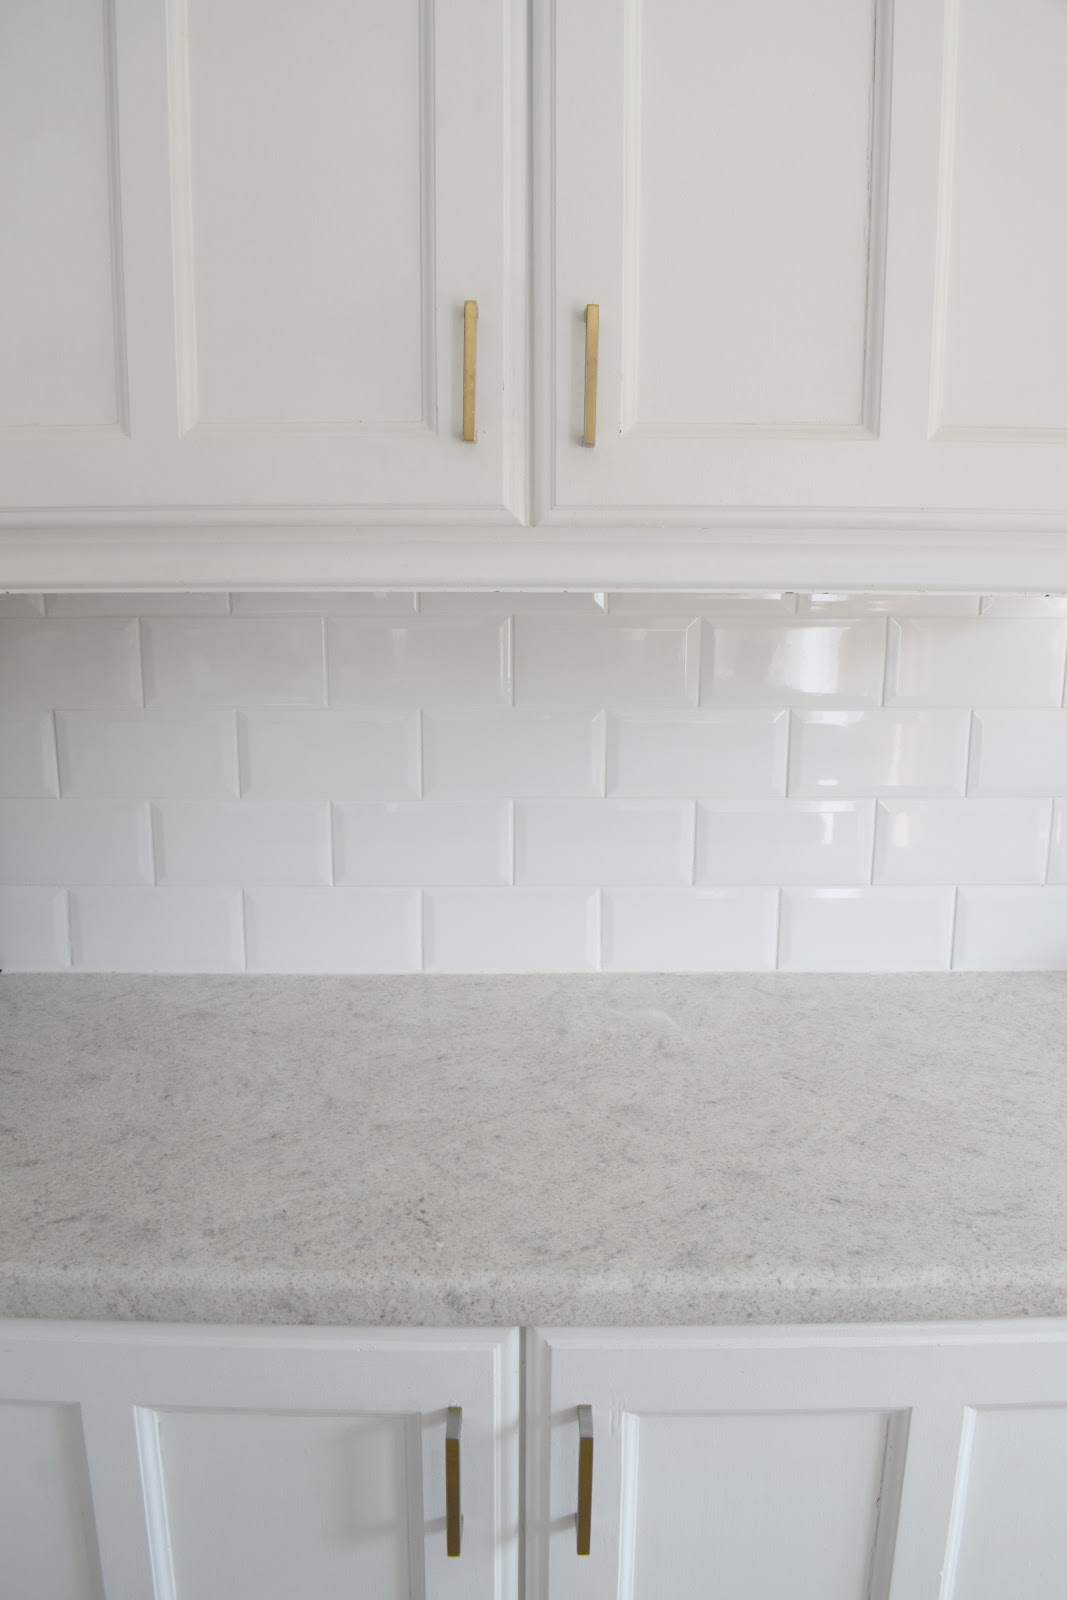 Co co contact paper backsplash - Removing And Replacing A Contact Paper Self Adhesive Vinyl Counter Top